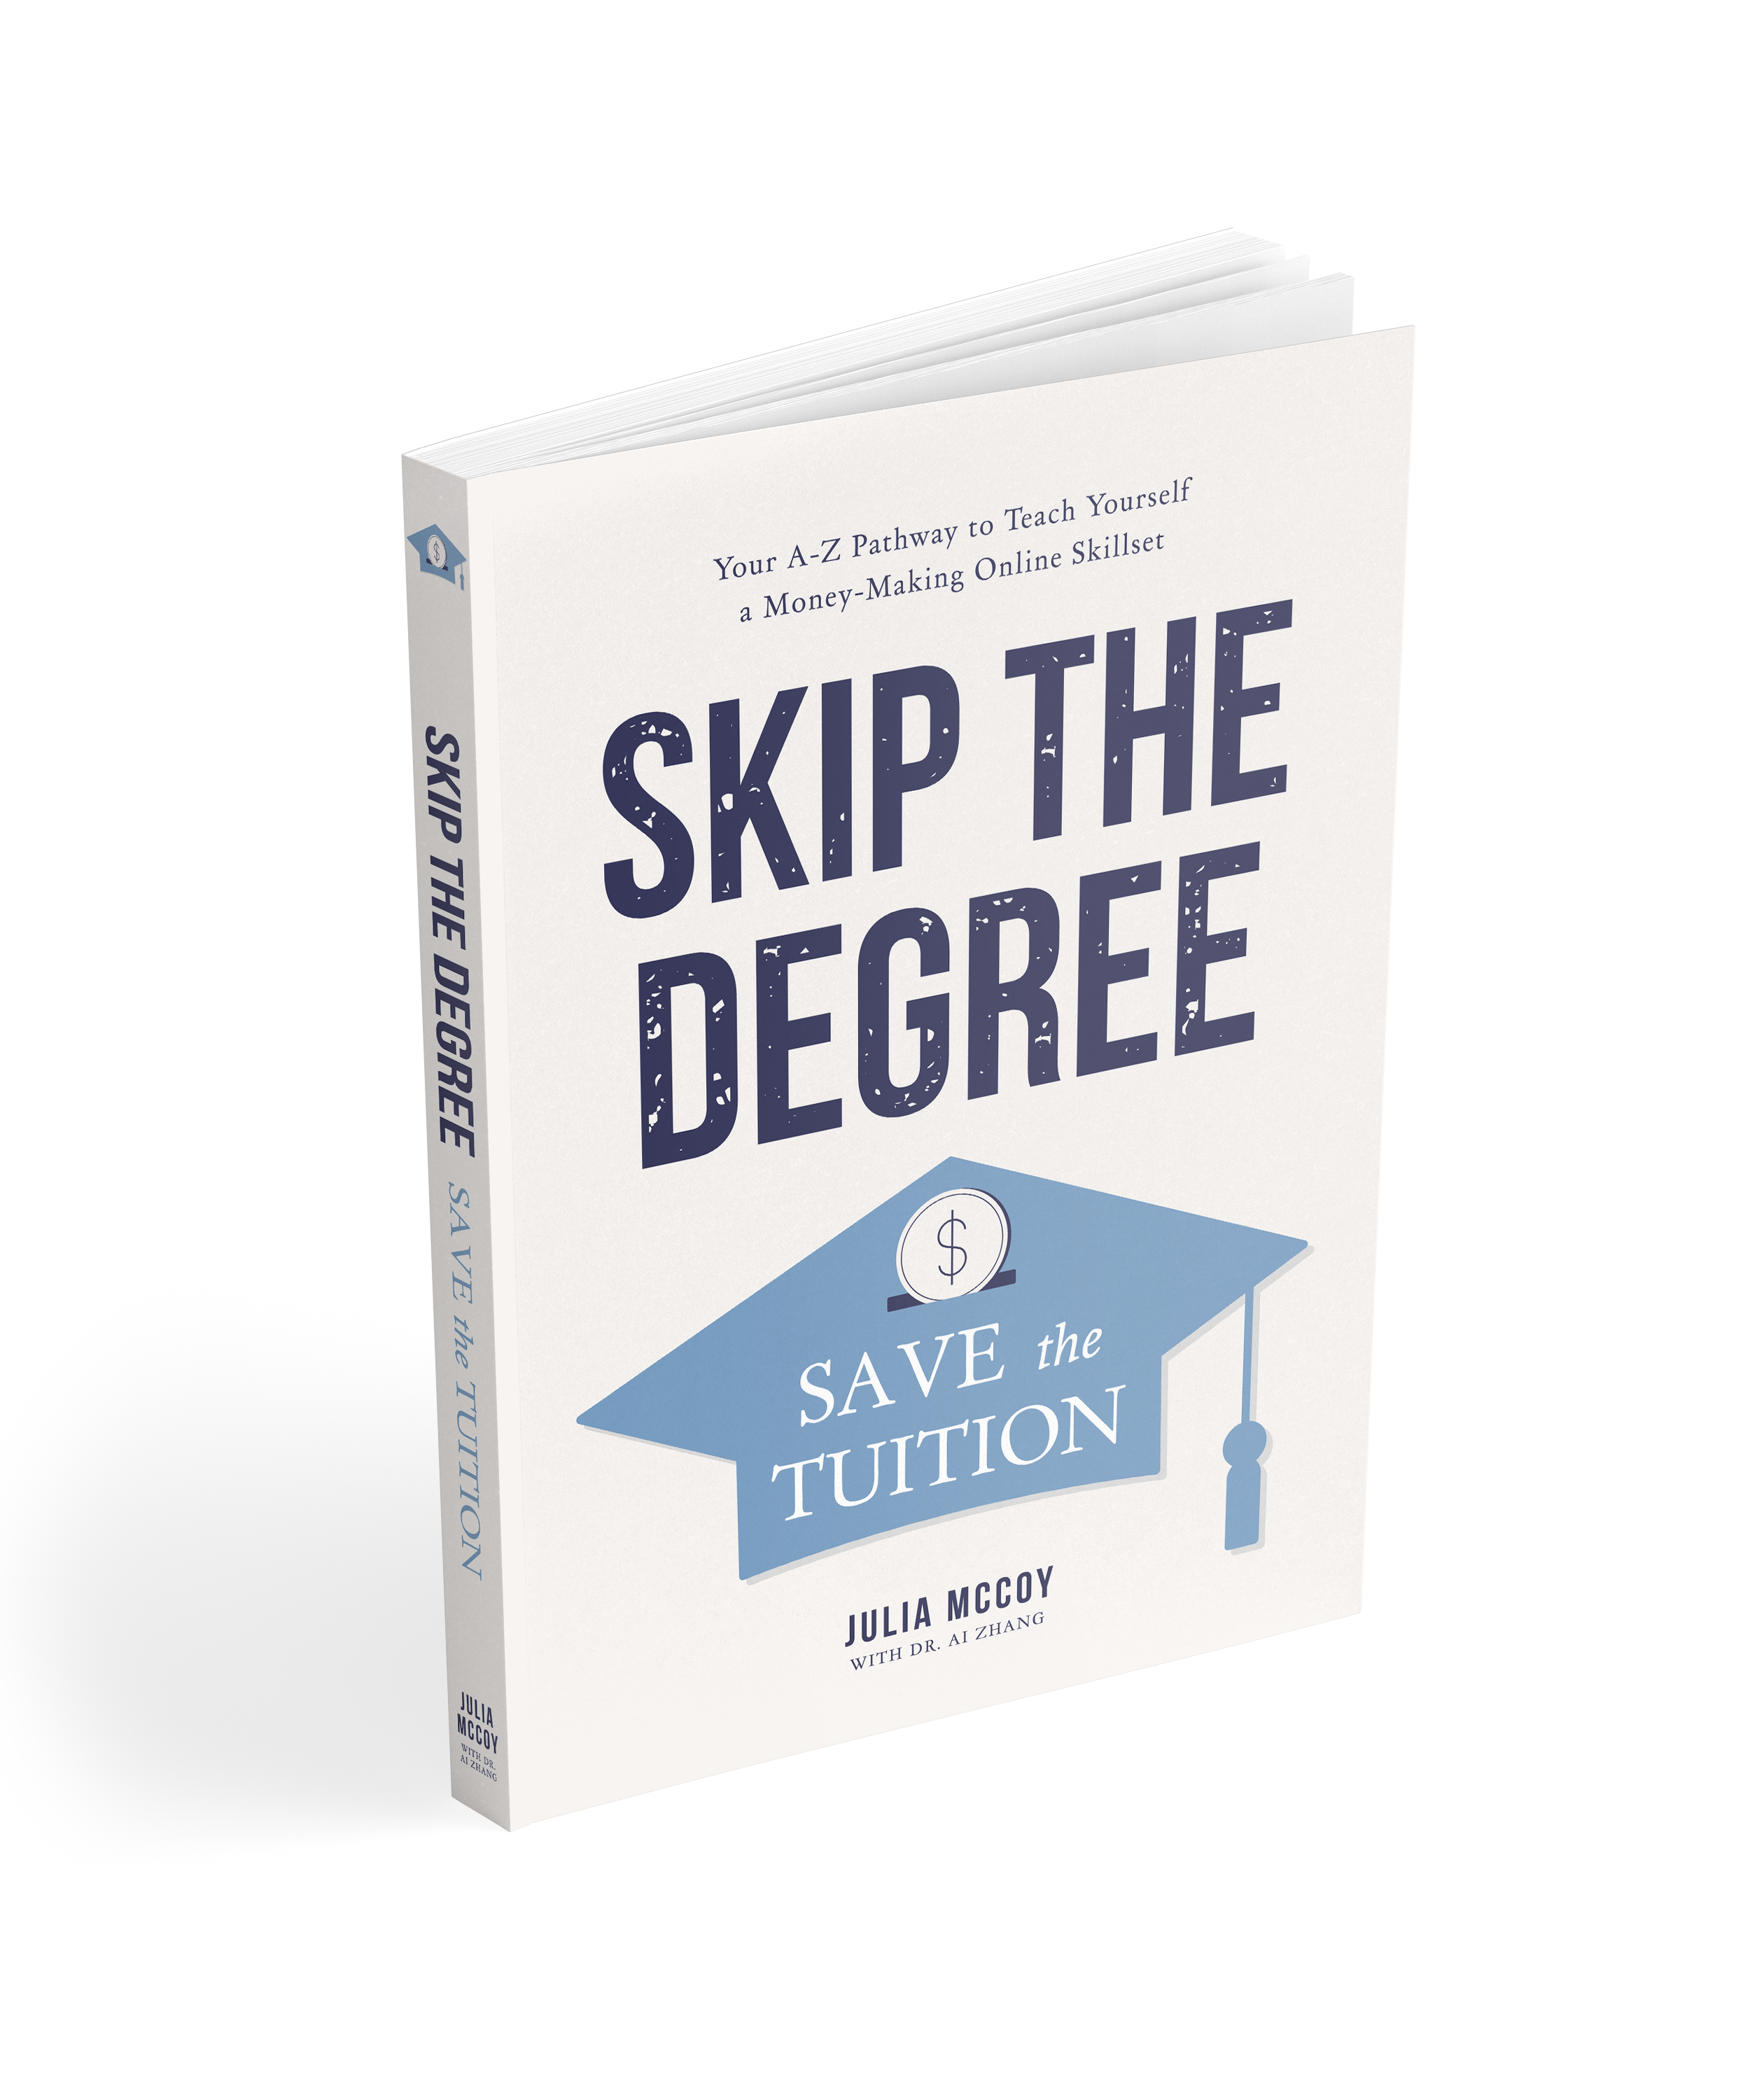 Skip the Degree, Save the Tuition book cover